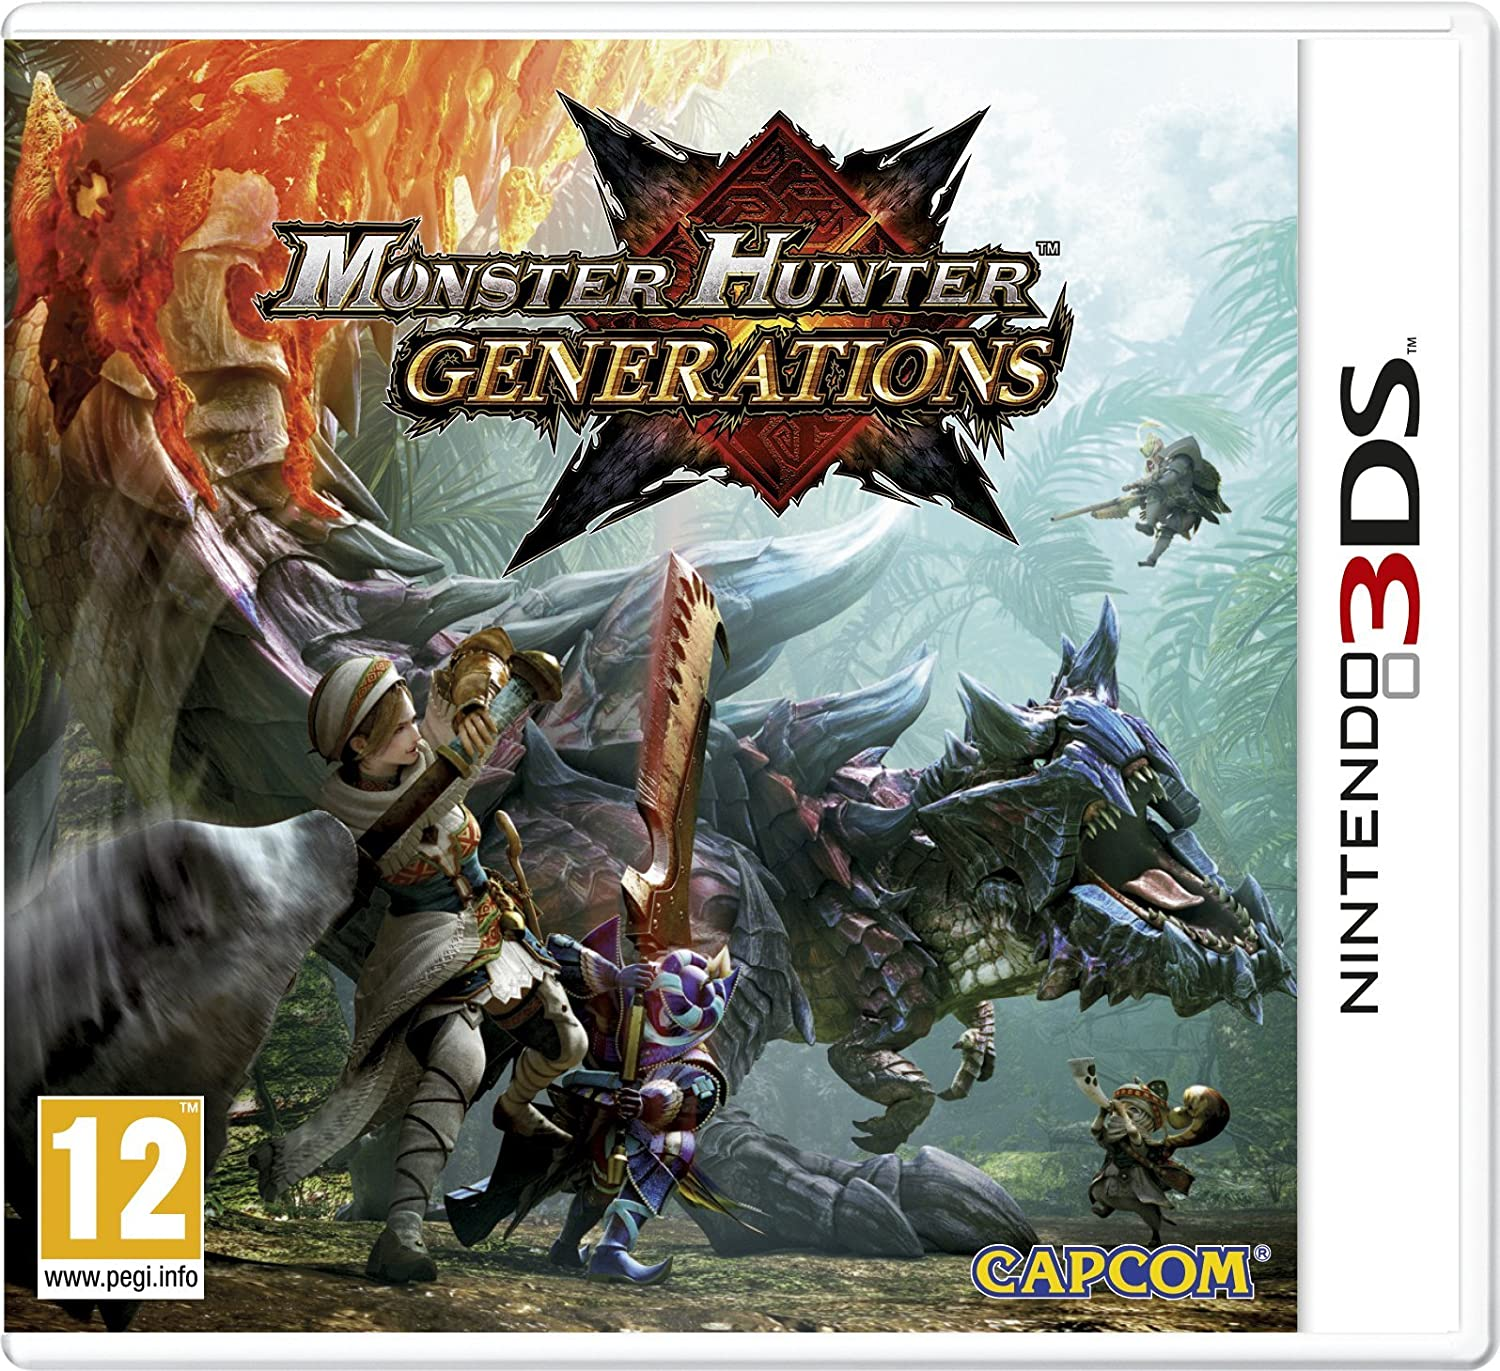 Monster Hunter Générations [3DS] | Capcom